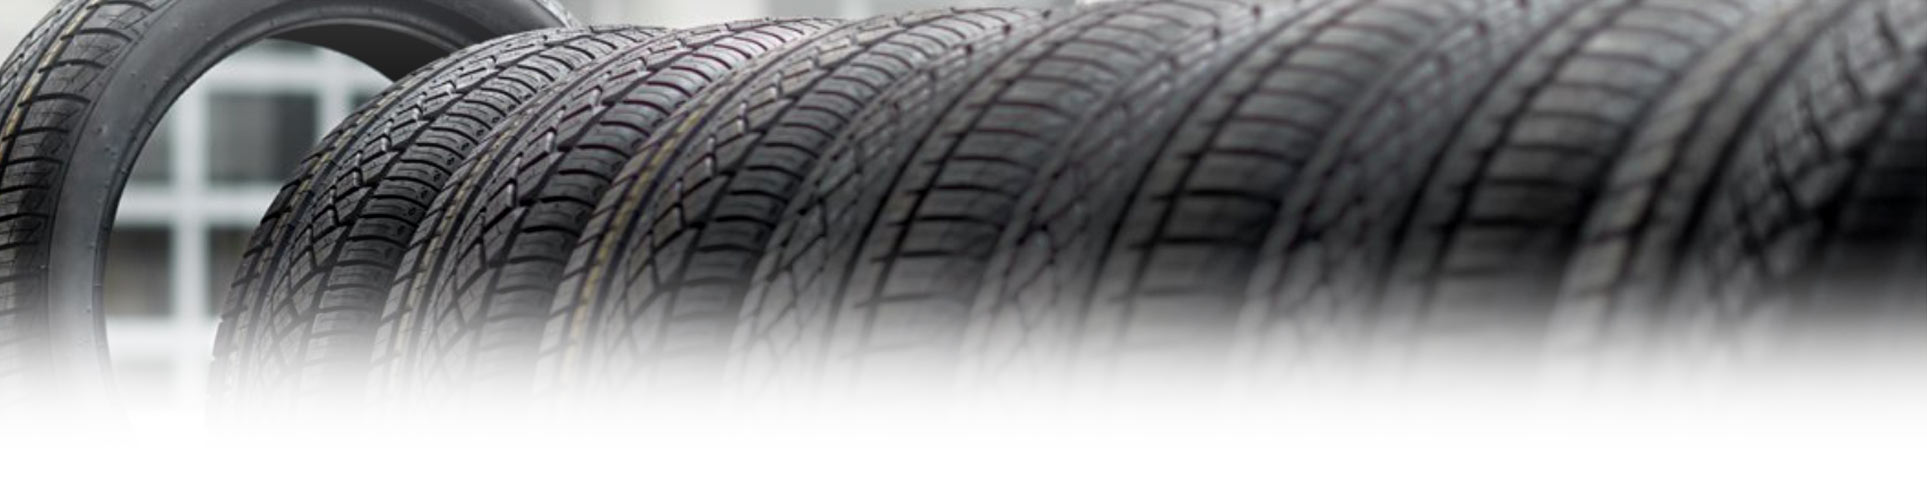 Big Brand Tire & Service Atascadero | Tires & Auto Repair in